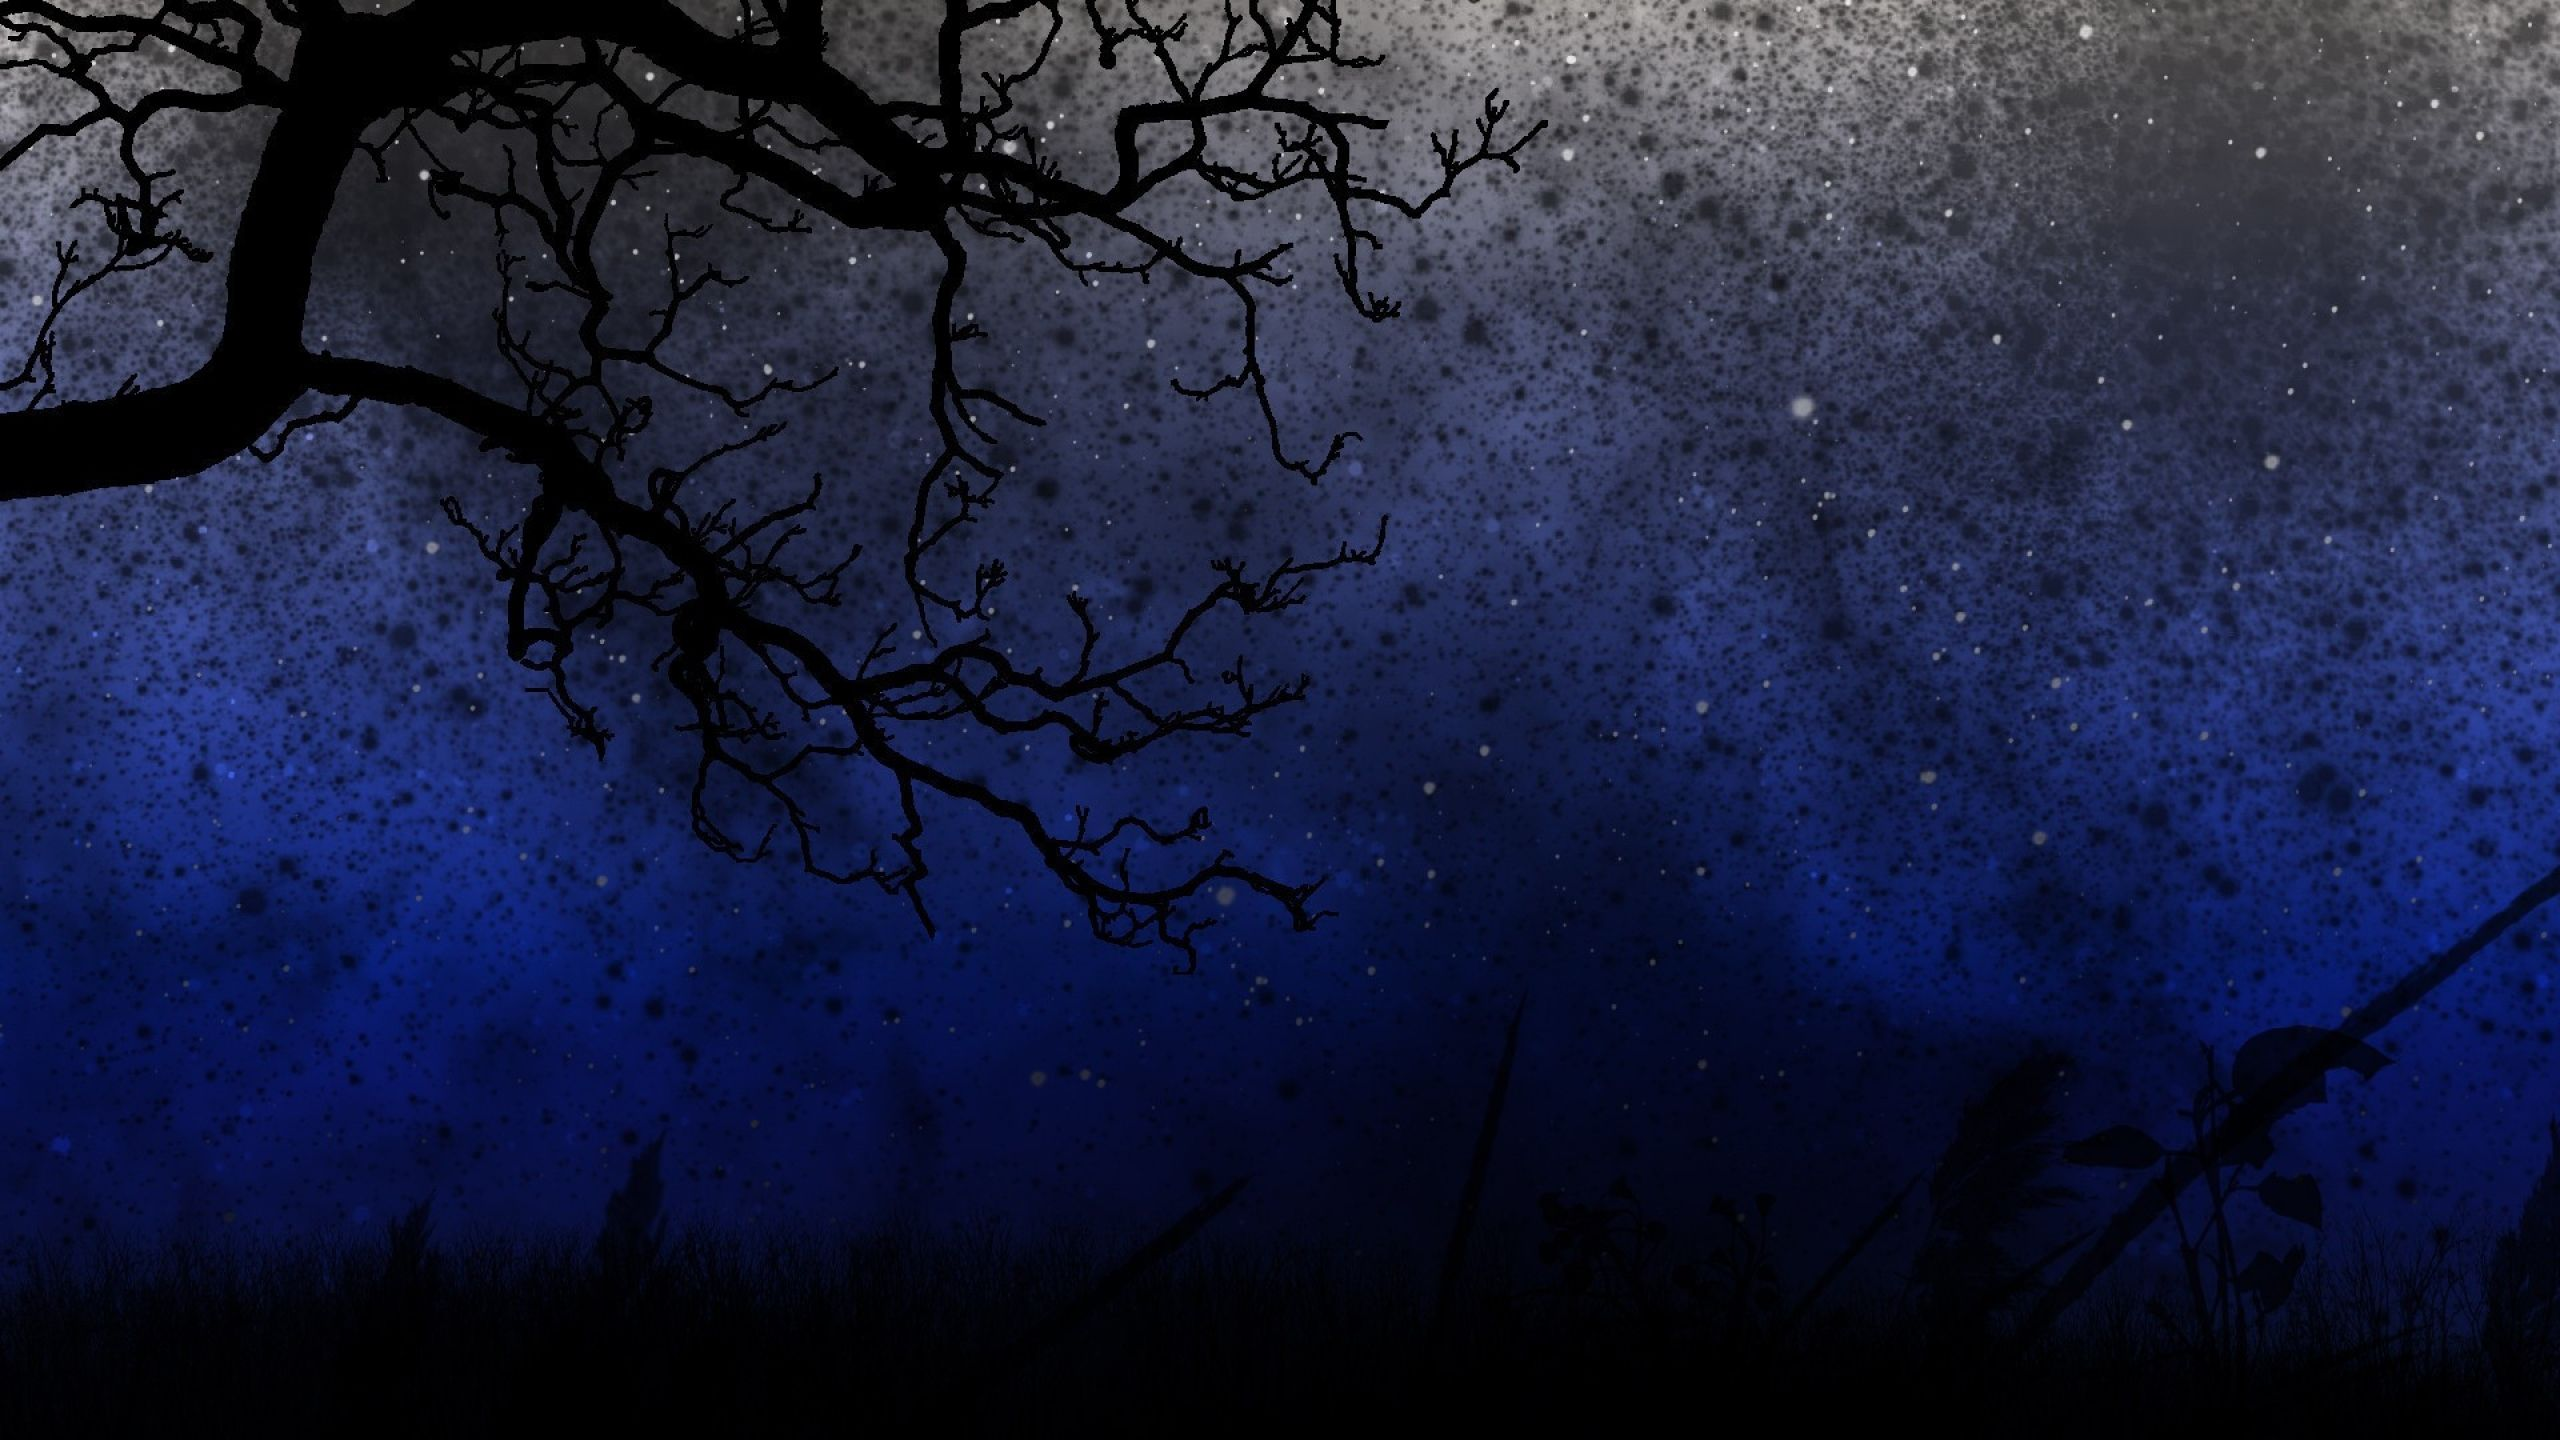 2560x1440 Wallpaper Sky Trees Night Wallpaper Tree Art